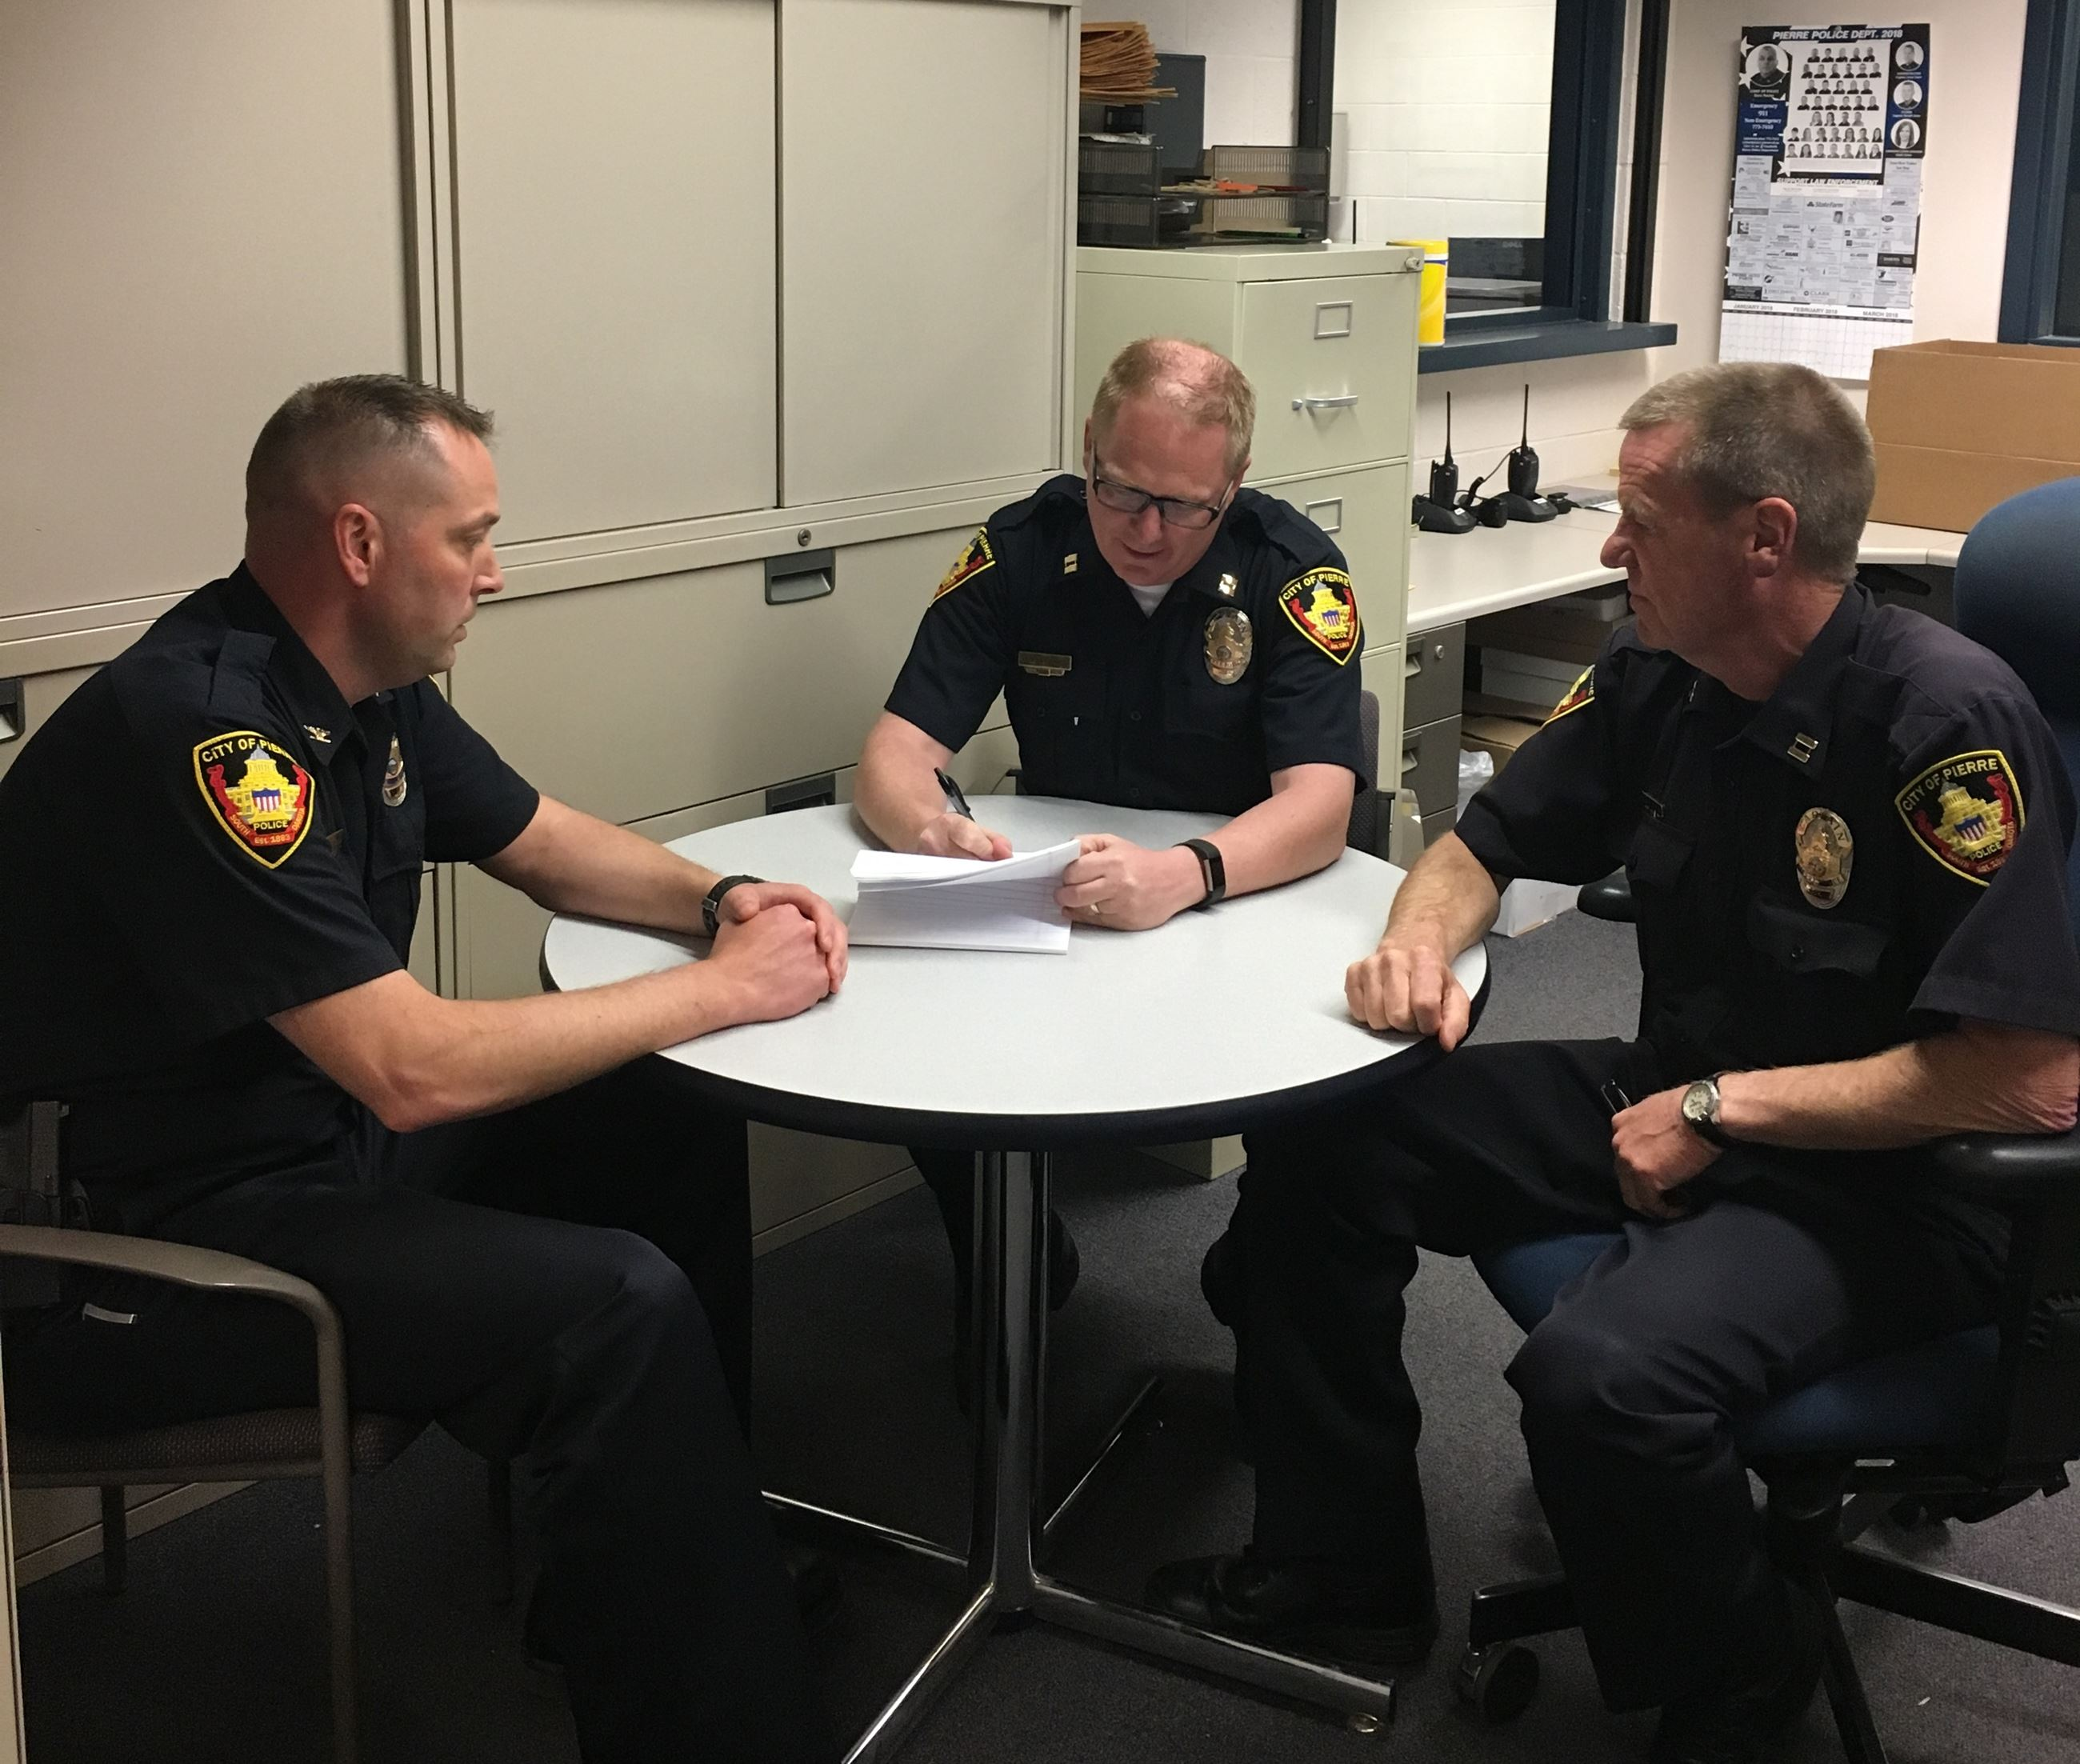 Police officers sitting around a table looking at paperwork